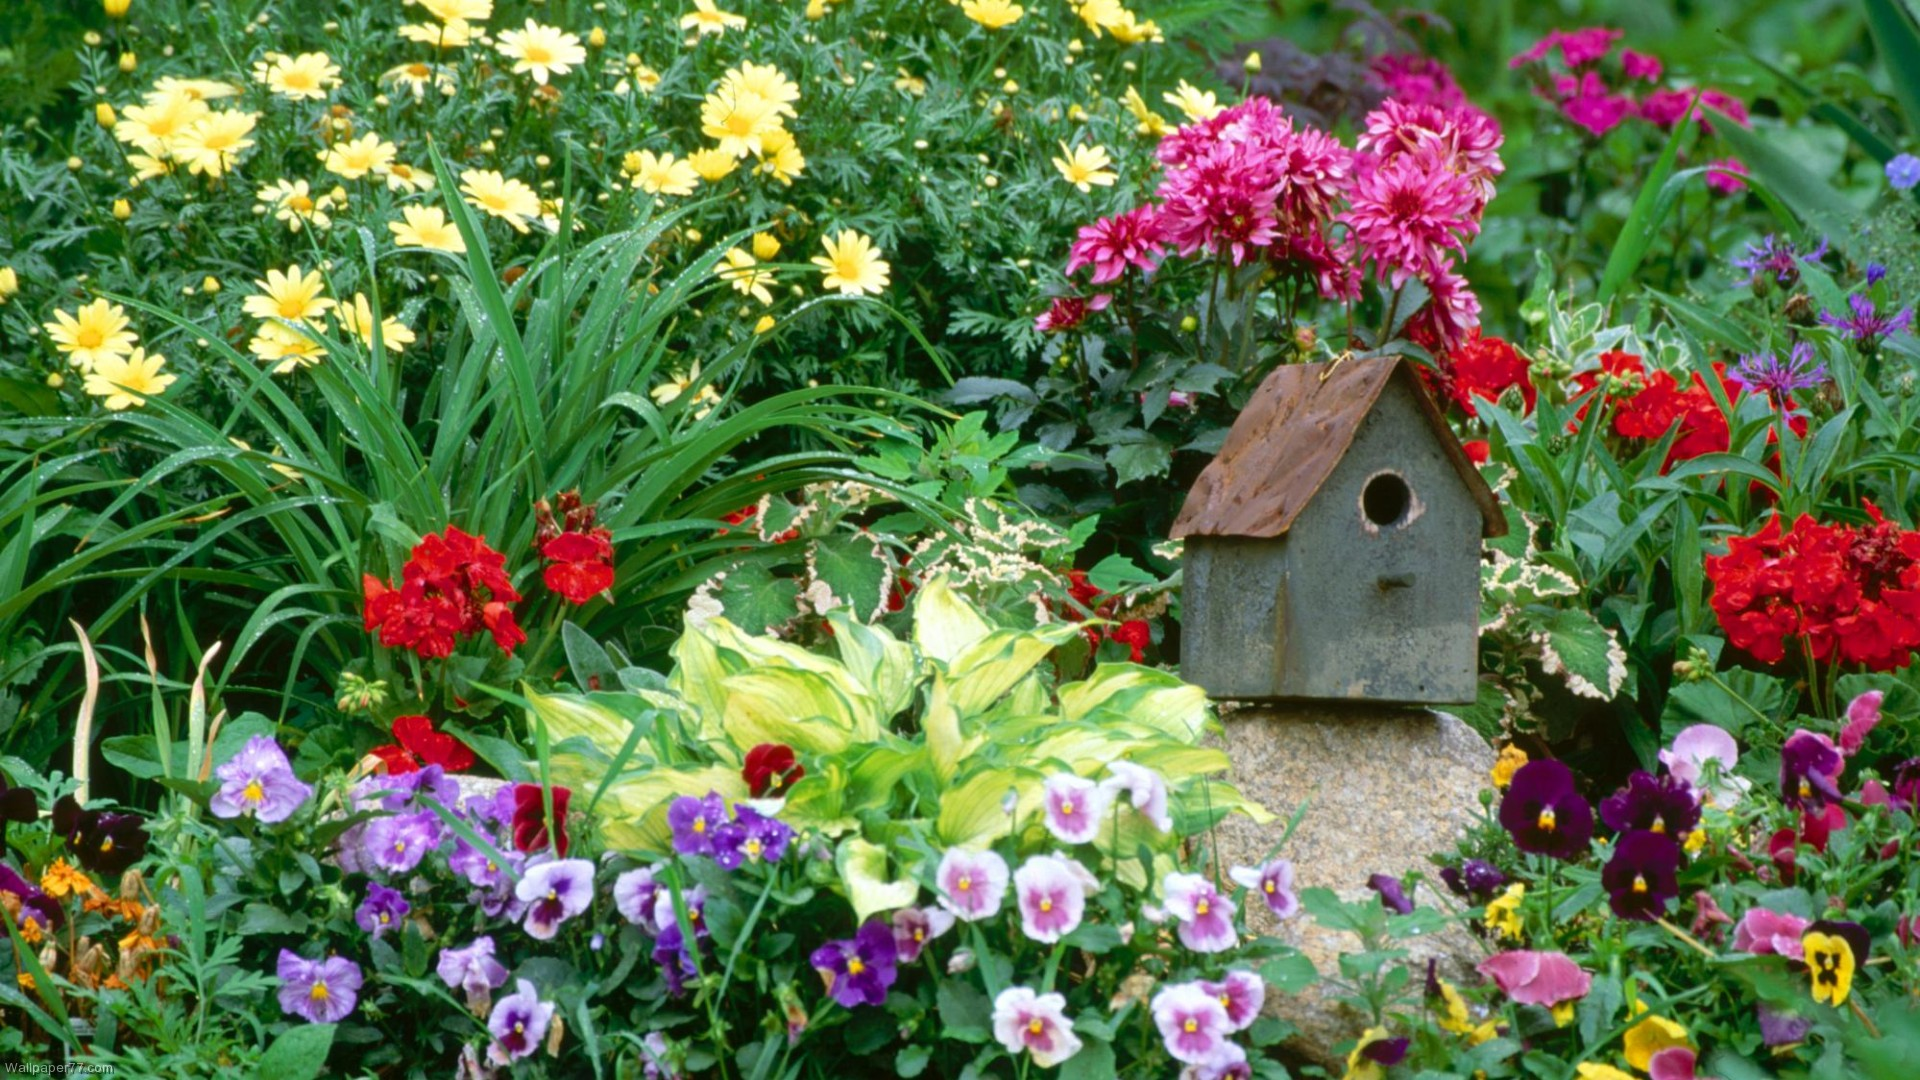 Free Wallpaper Flowers And Garden Renovating Ideas